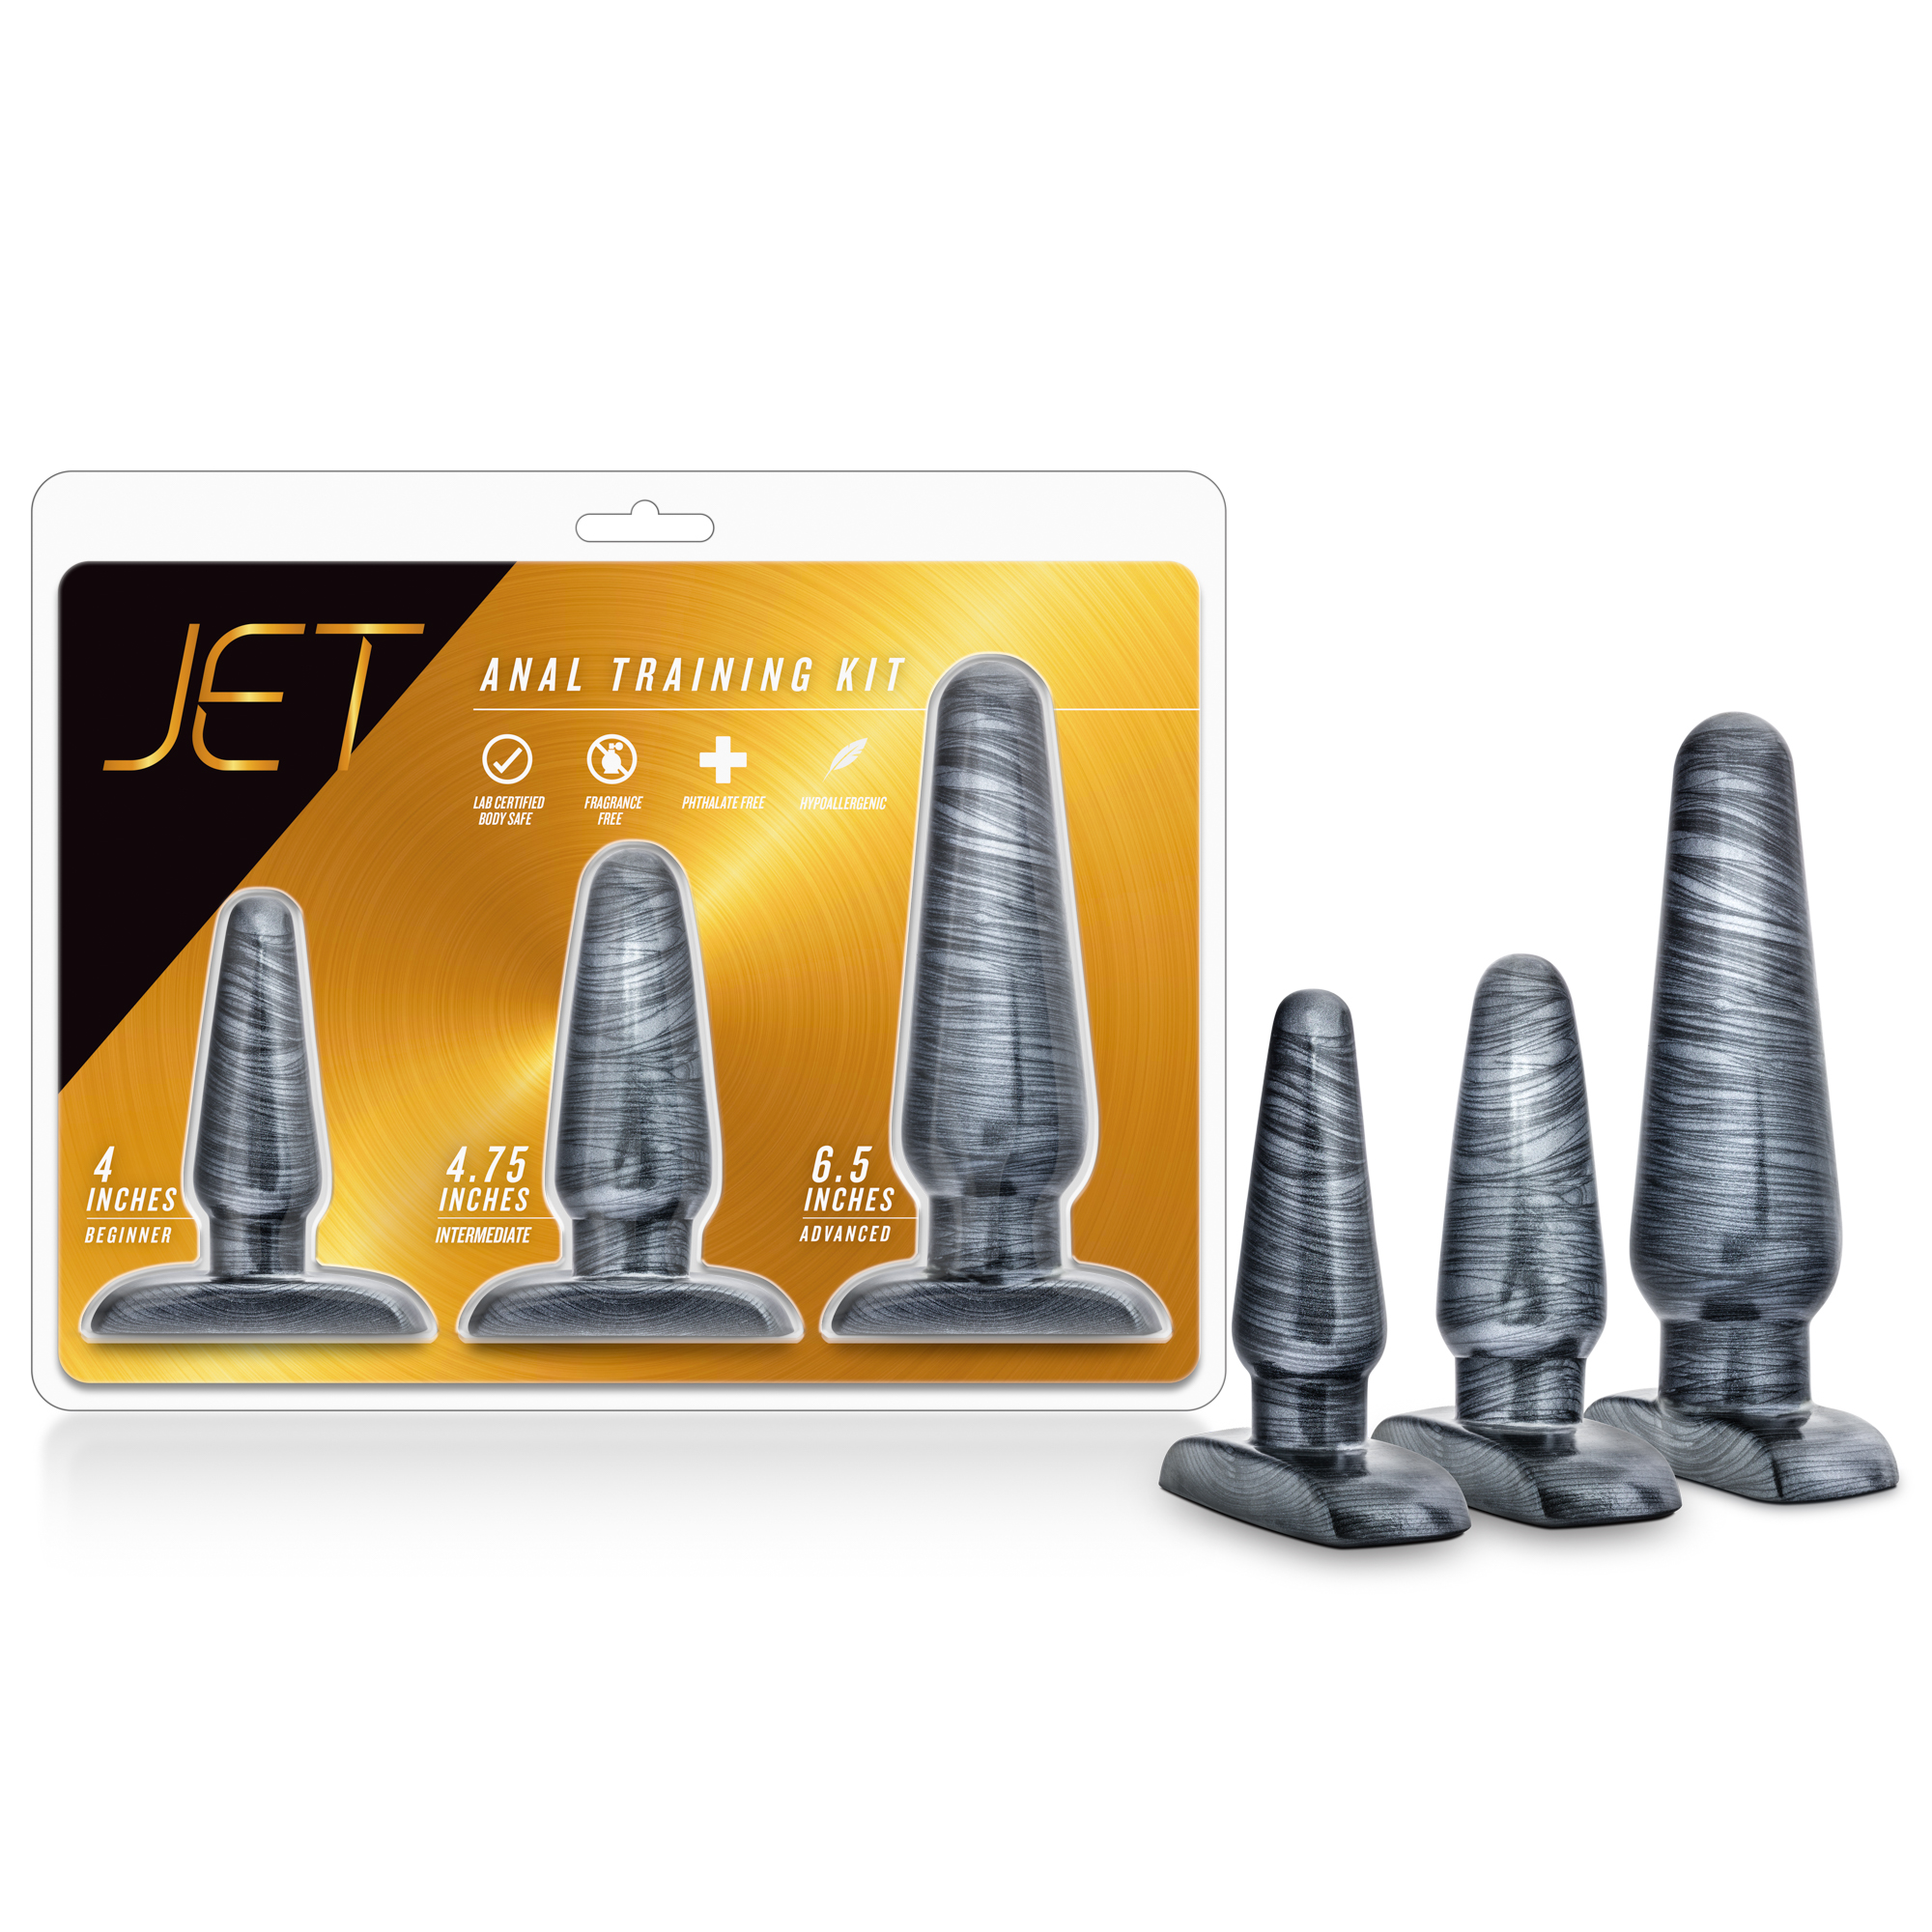 Jet - Anal Trainer Kit - Carbon Metallic Black